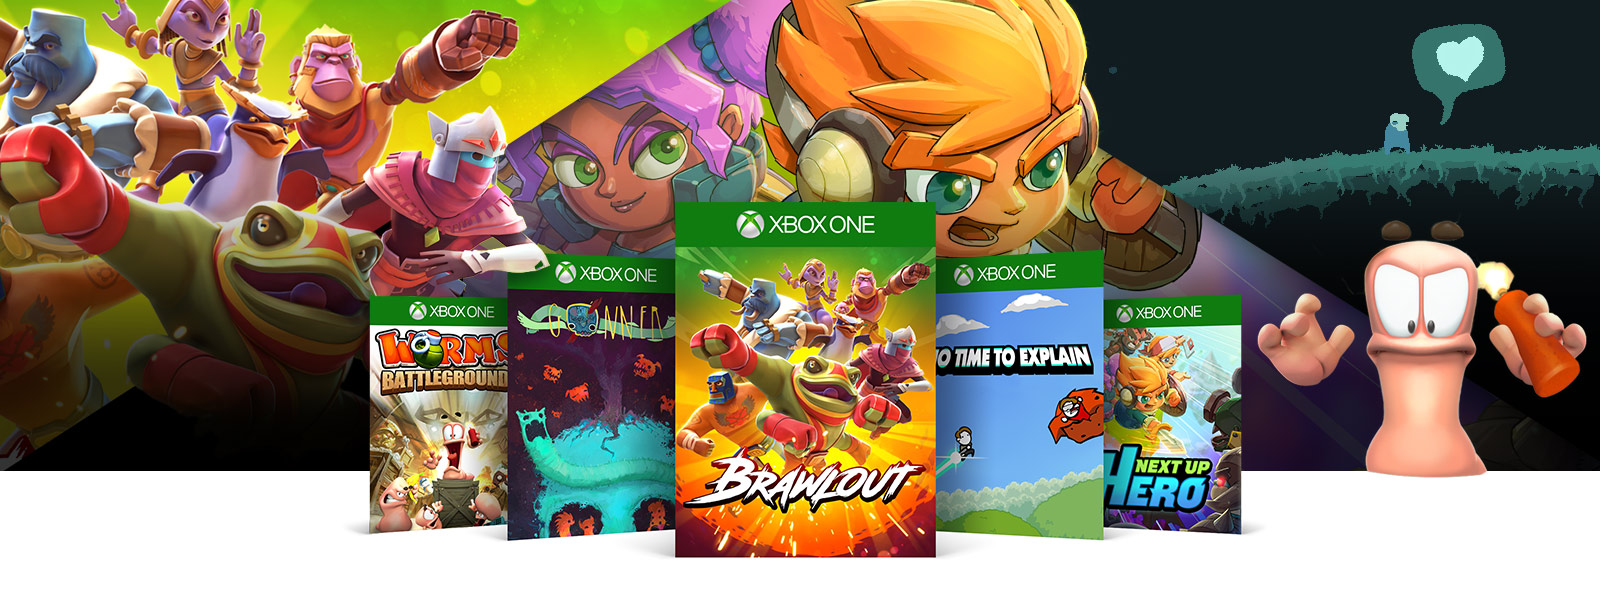 Worms Battlegrounds, Gonner, Brawlout, No Time To Explain and Next Up Hero box shots in front of a collage of game characters